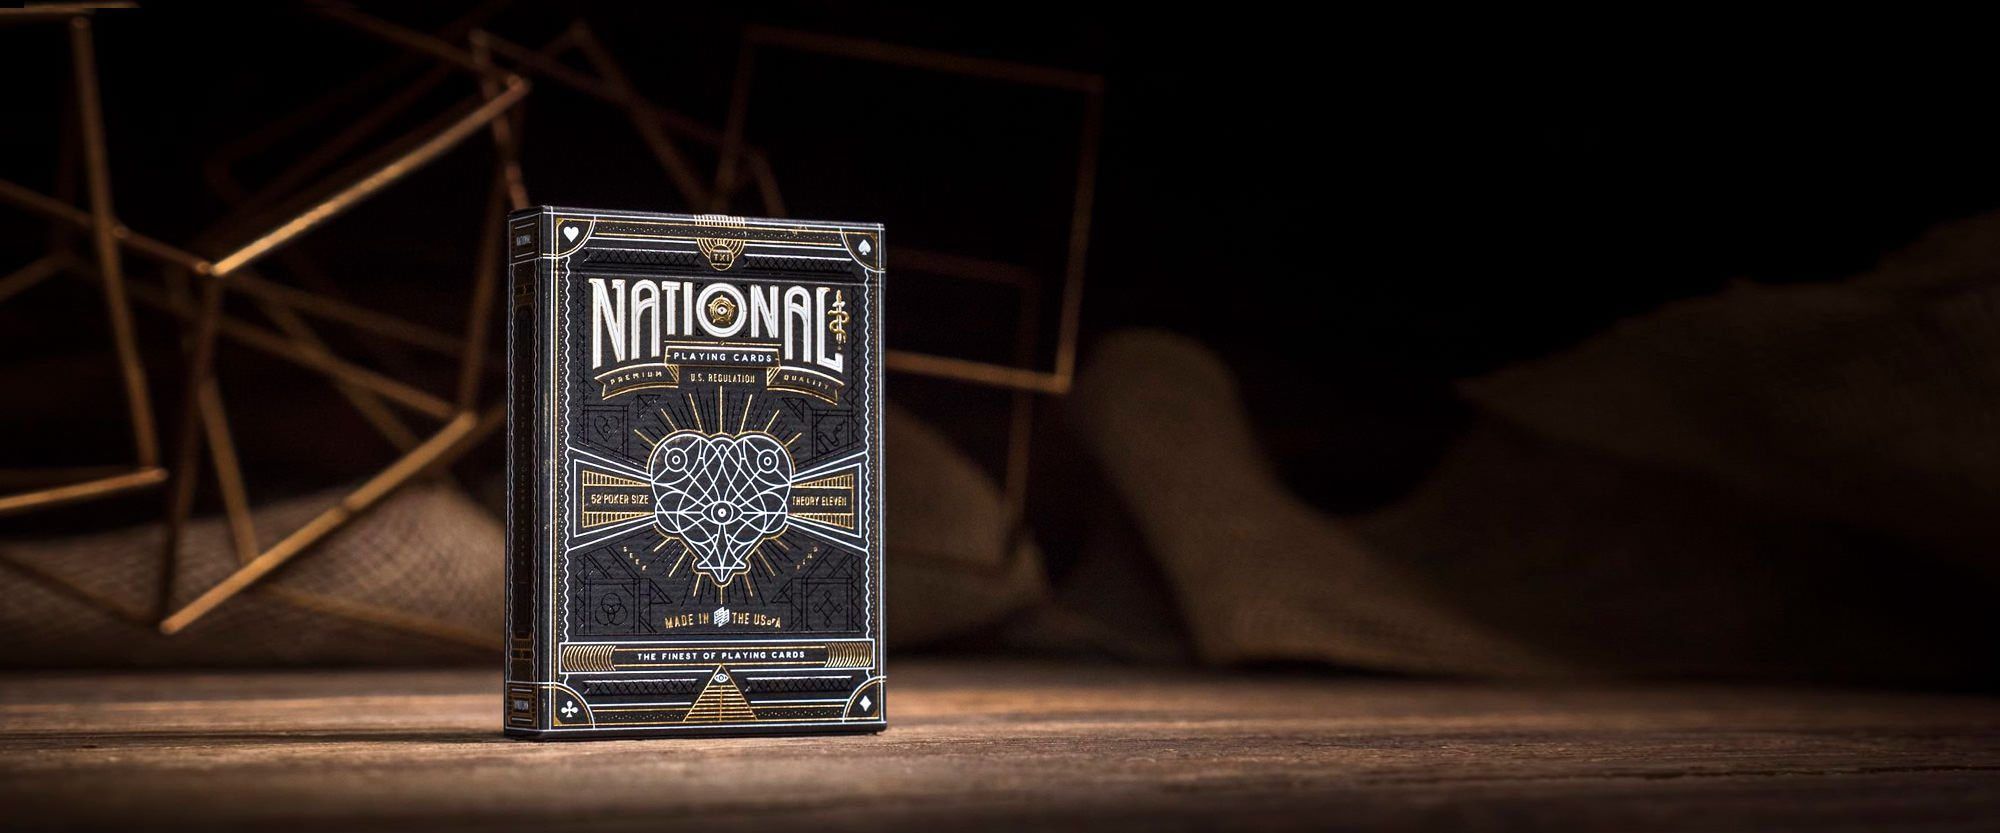 National Playing Cards Cadeau